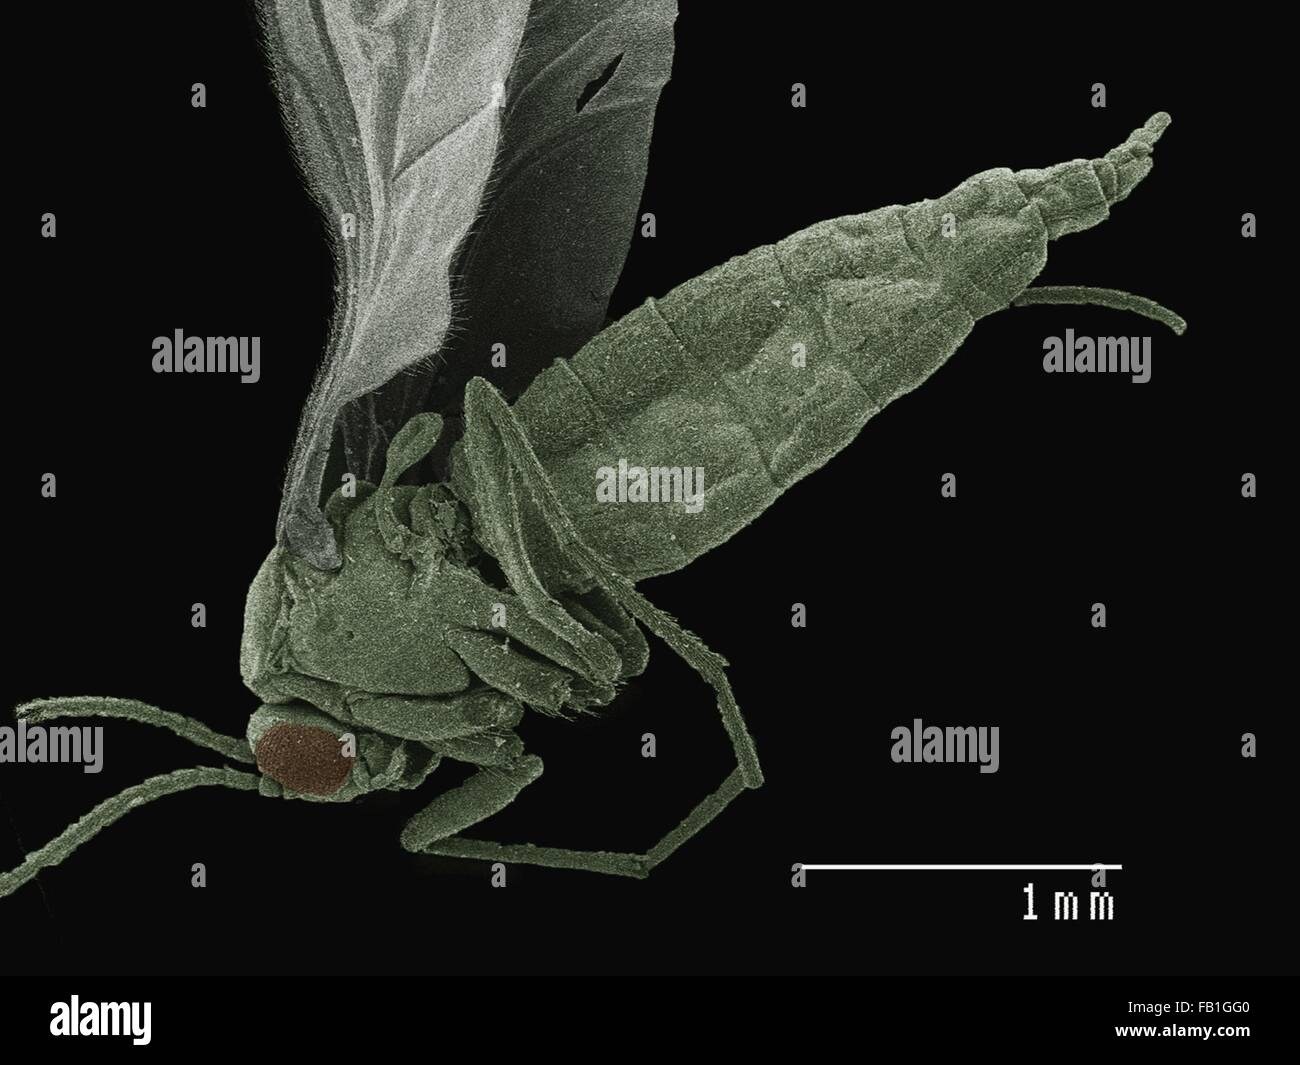 Coloured SEM of small fly (Diptera) Stock Photo